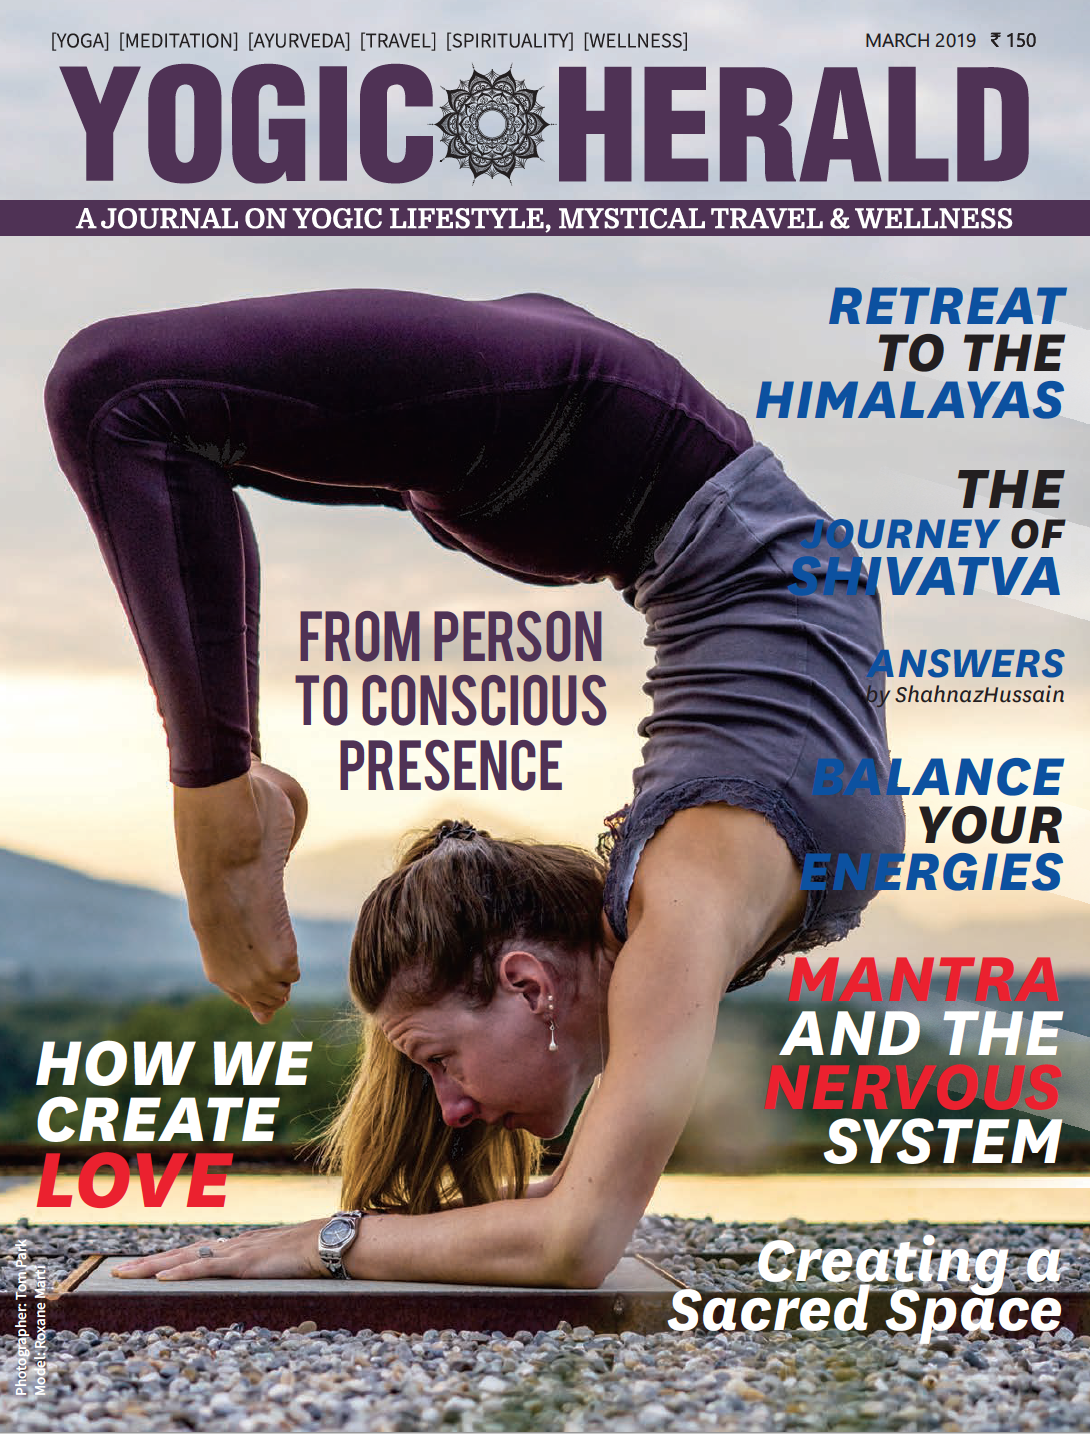 Published on the Front Cover of Yogic Herald - March 2019